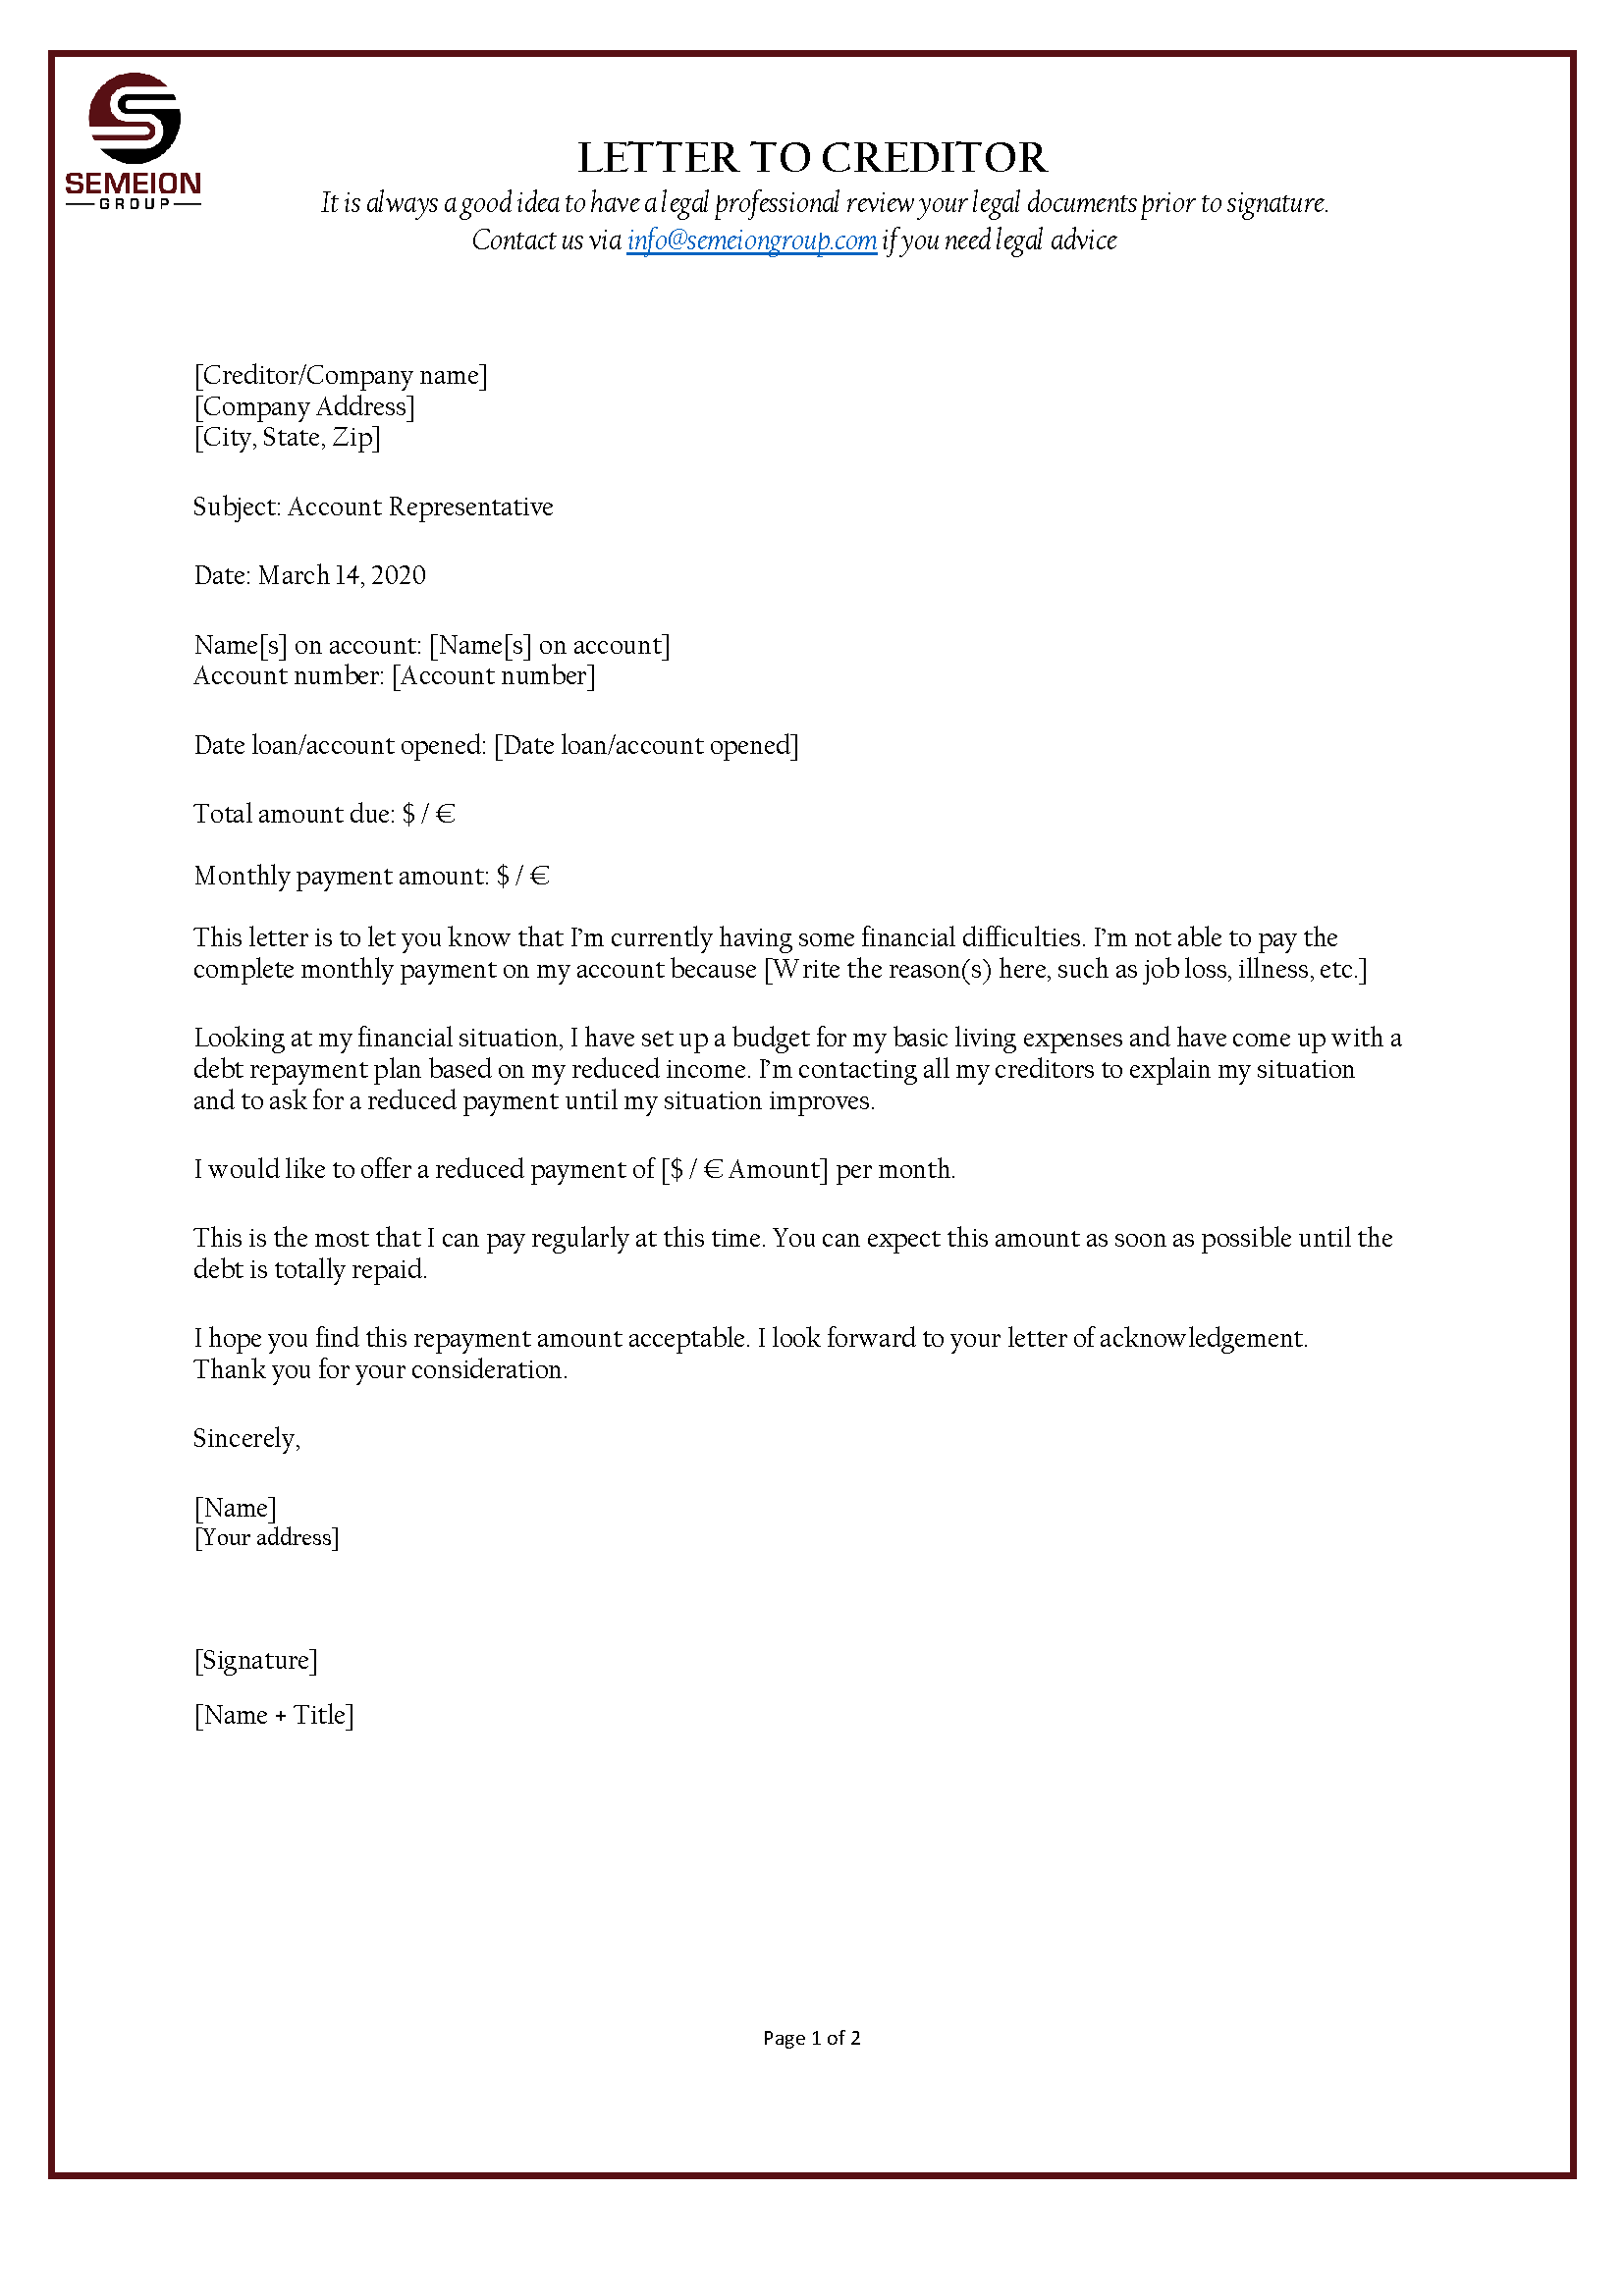 Letter to Creditor template | Templates at allbusinesstemplates.com